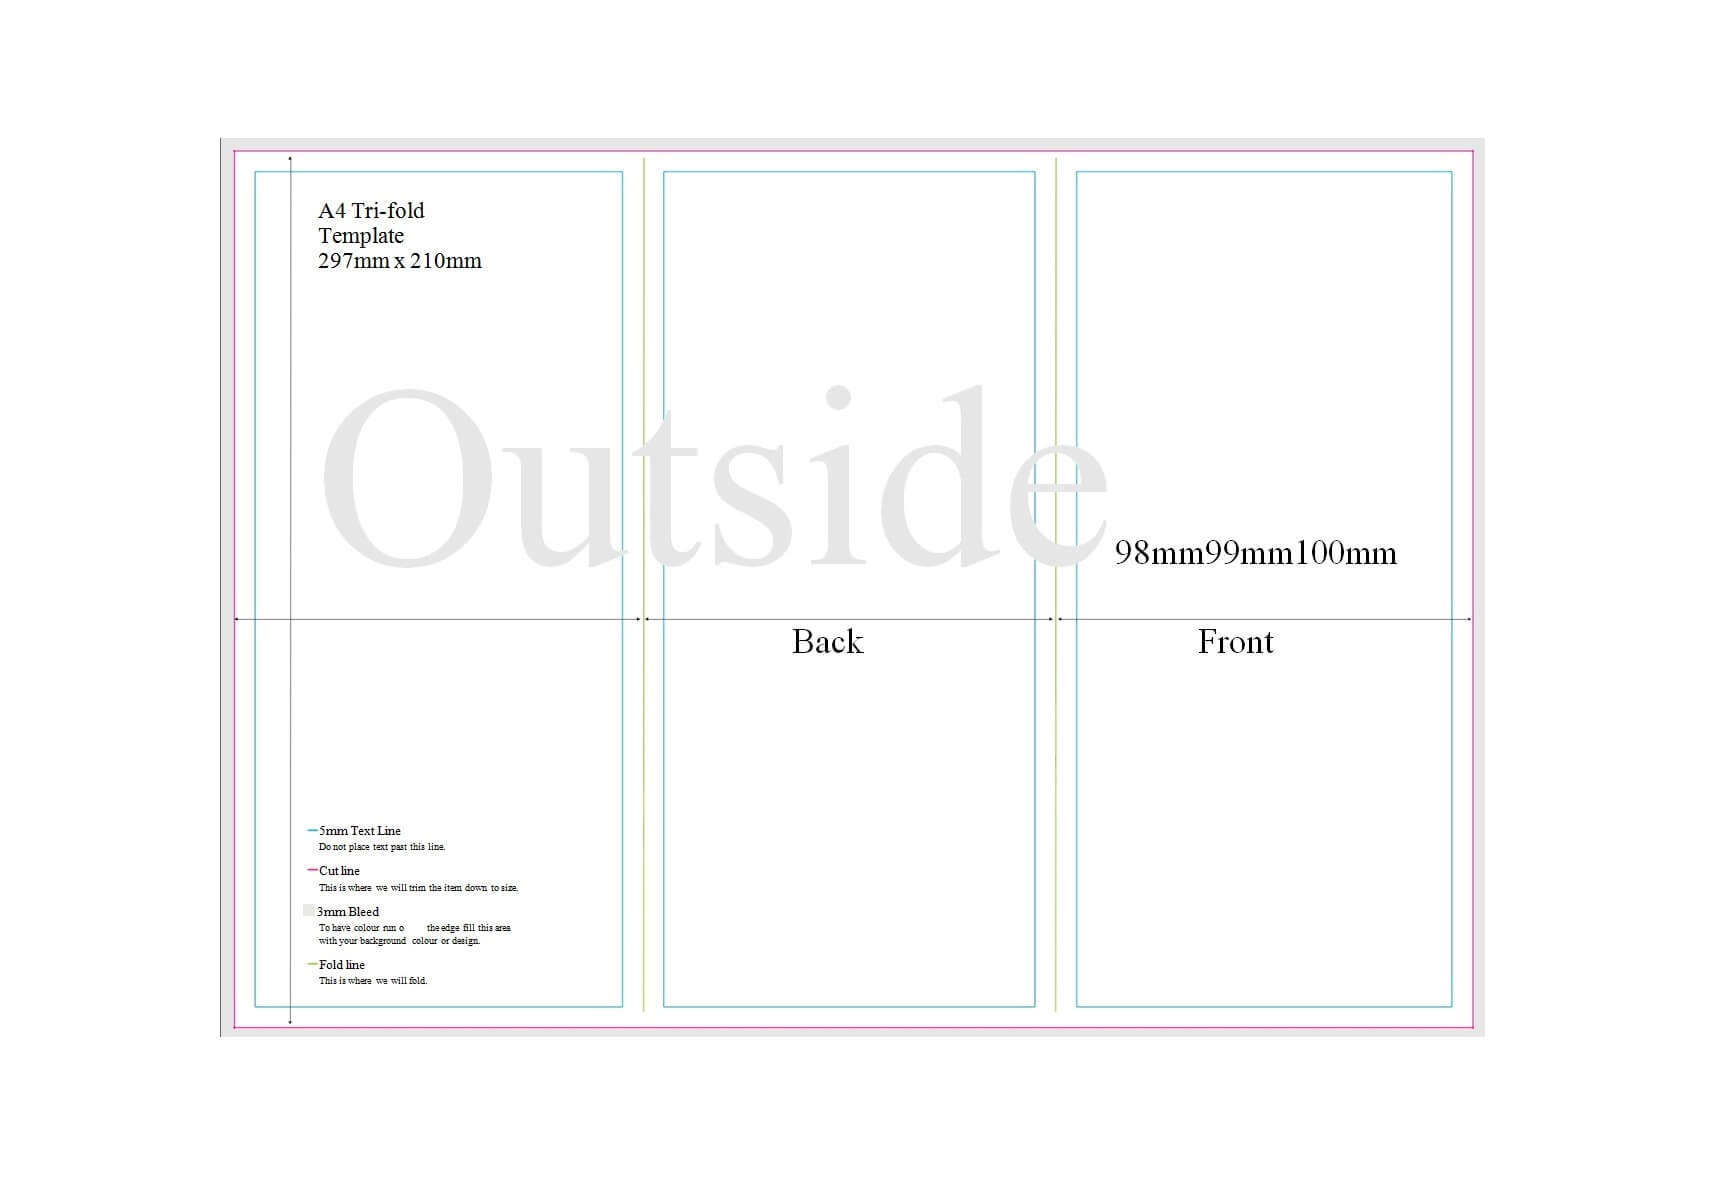 50 Free Pamphlet Templates [Word / Google Docs] ᐅ Template Lab Within Brochure Templates For Google Docs